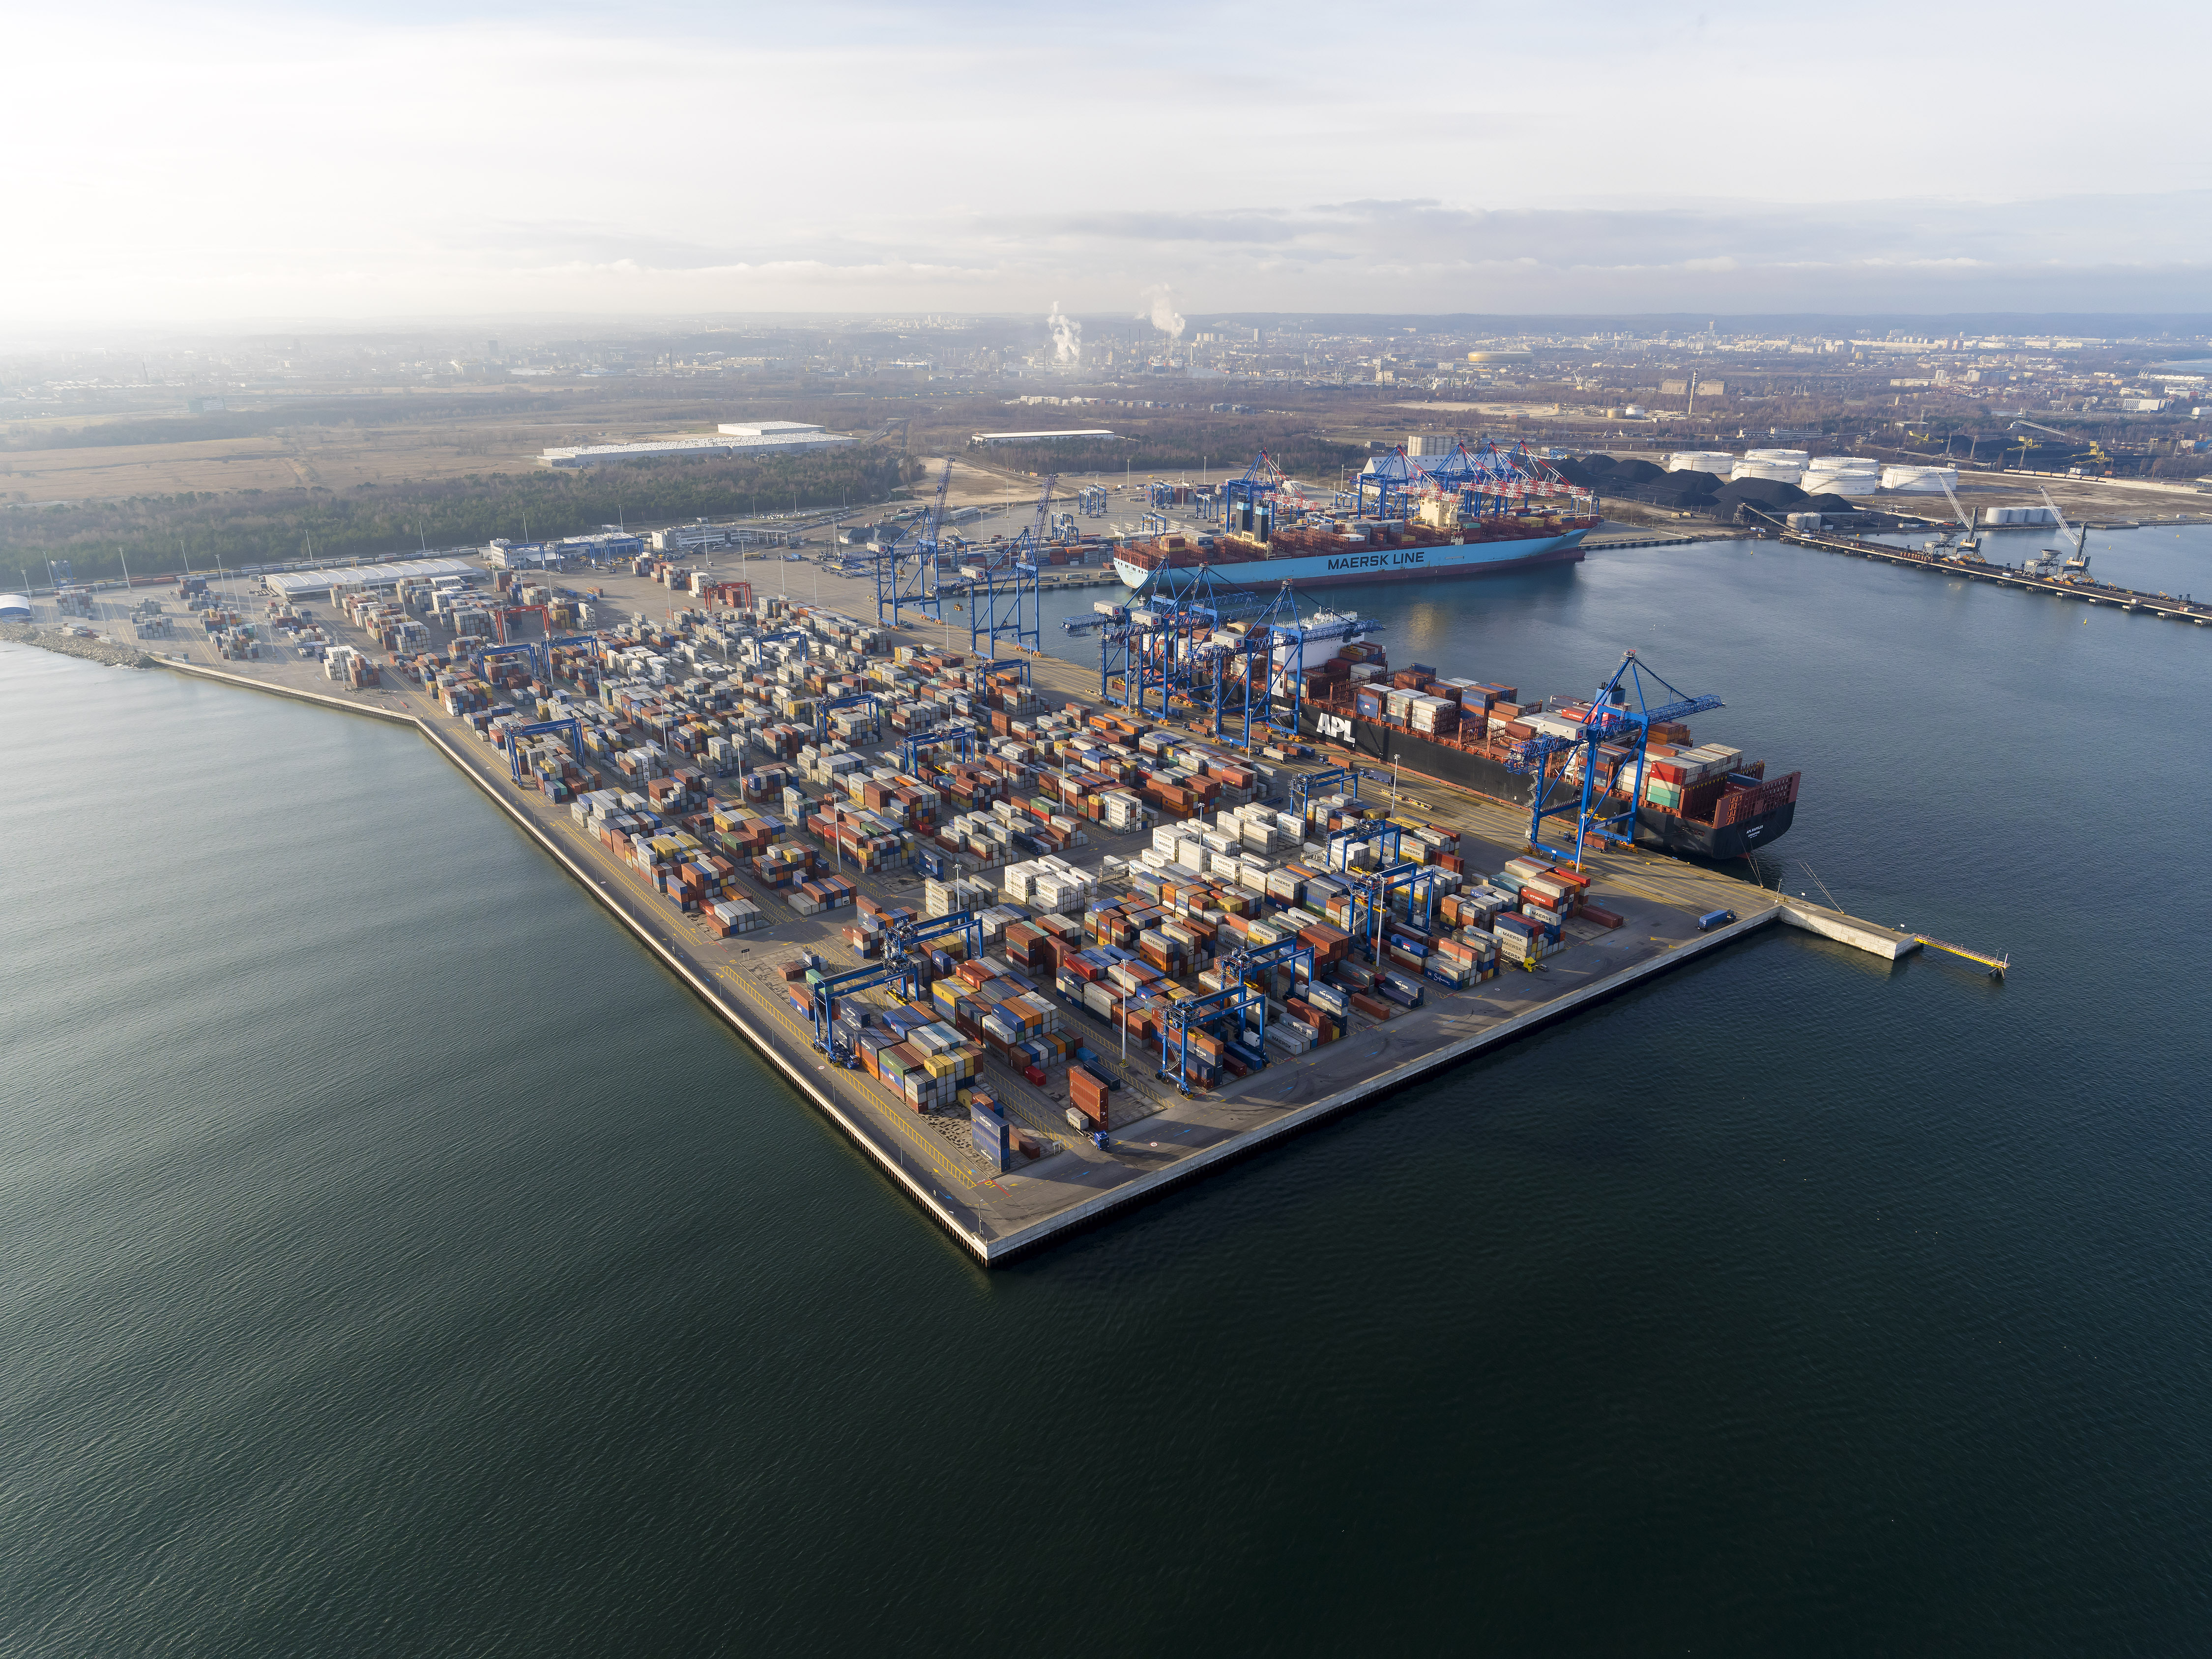 PSA, PFR and IFM to acquire DCT Gdańsk in Polend